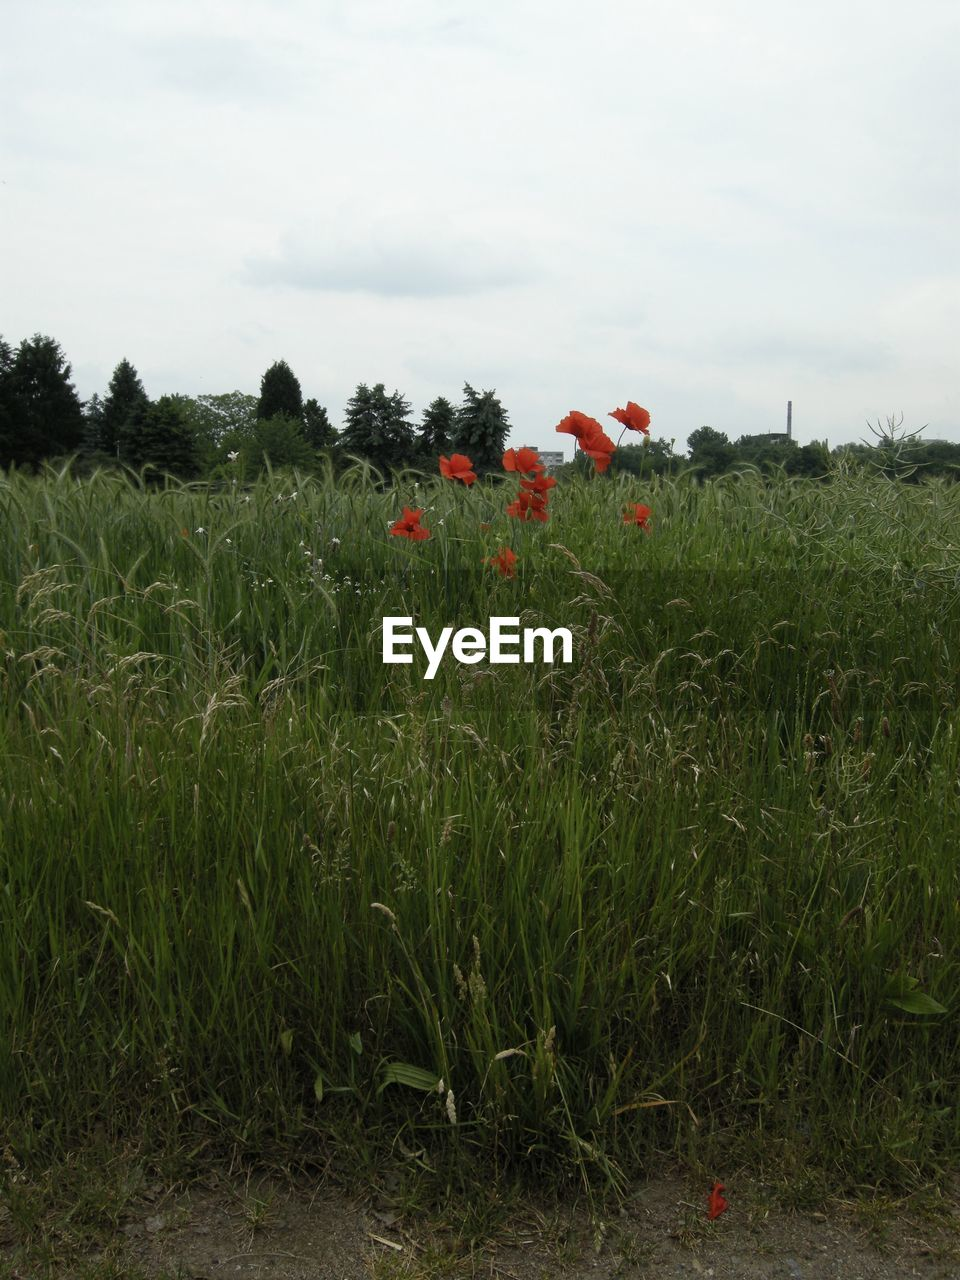 growth, grass, field, plant, sky, nature, flower, red, vegetation, poppy, outdoors, landscape, beauty in nature, no people, day, tree, freshness